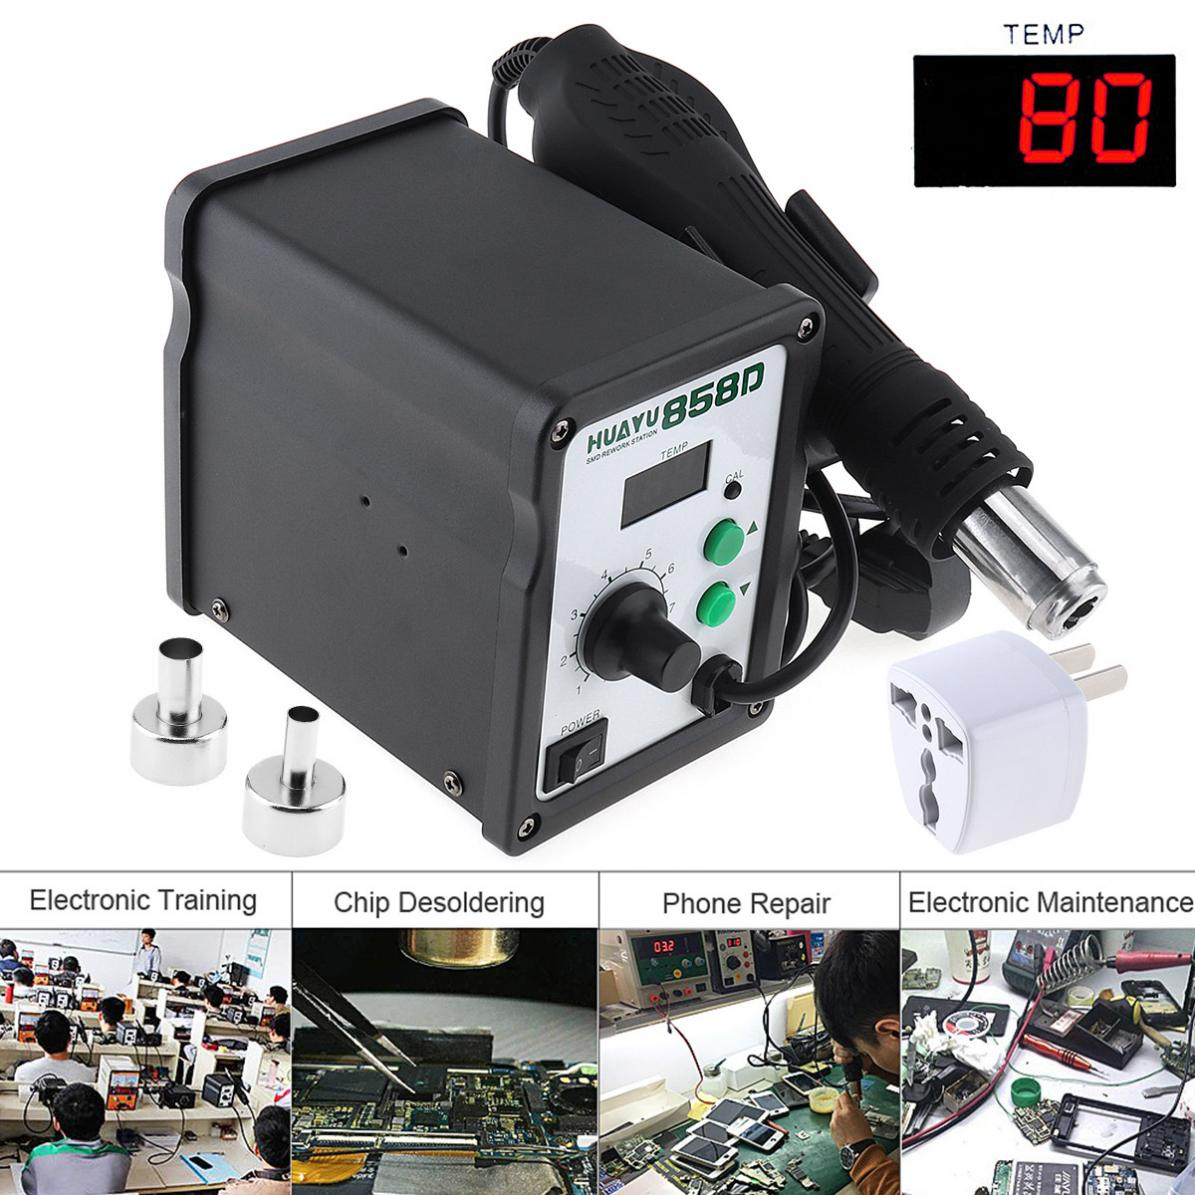 H858D Multifunction 110V LCD Digital Display Hot-Air Desoldering Station with Table Type and Helical Wind lp116wh2 m116nwr1 ltn116at02 n116bge lb1 b116xw03 v 0 n116bge l41 n116bge lb1 ltn116at04 claa116wa03a b116xw01slim lcd